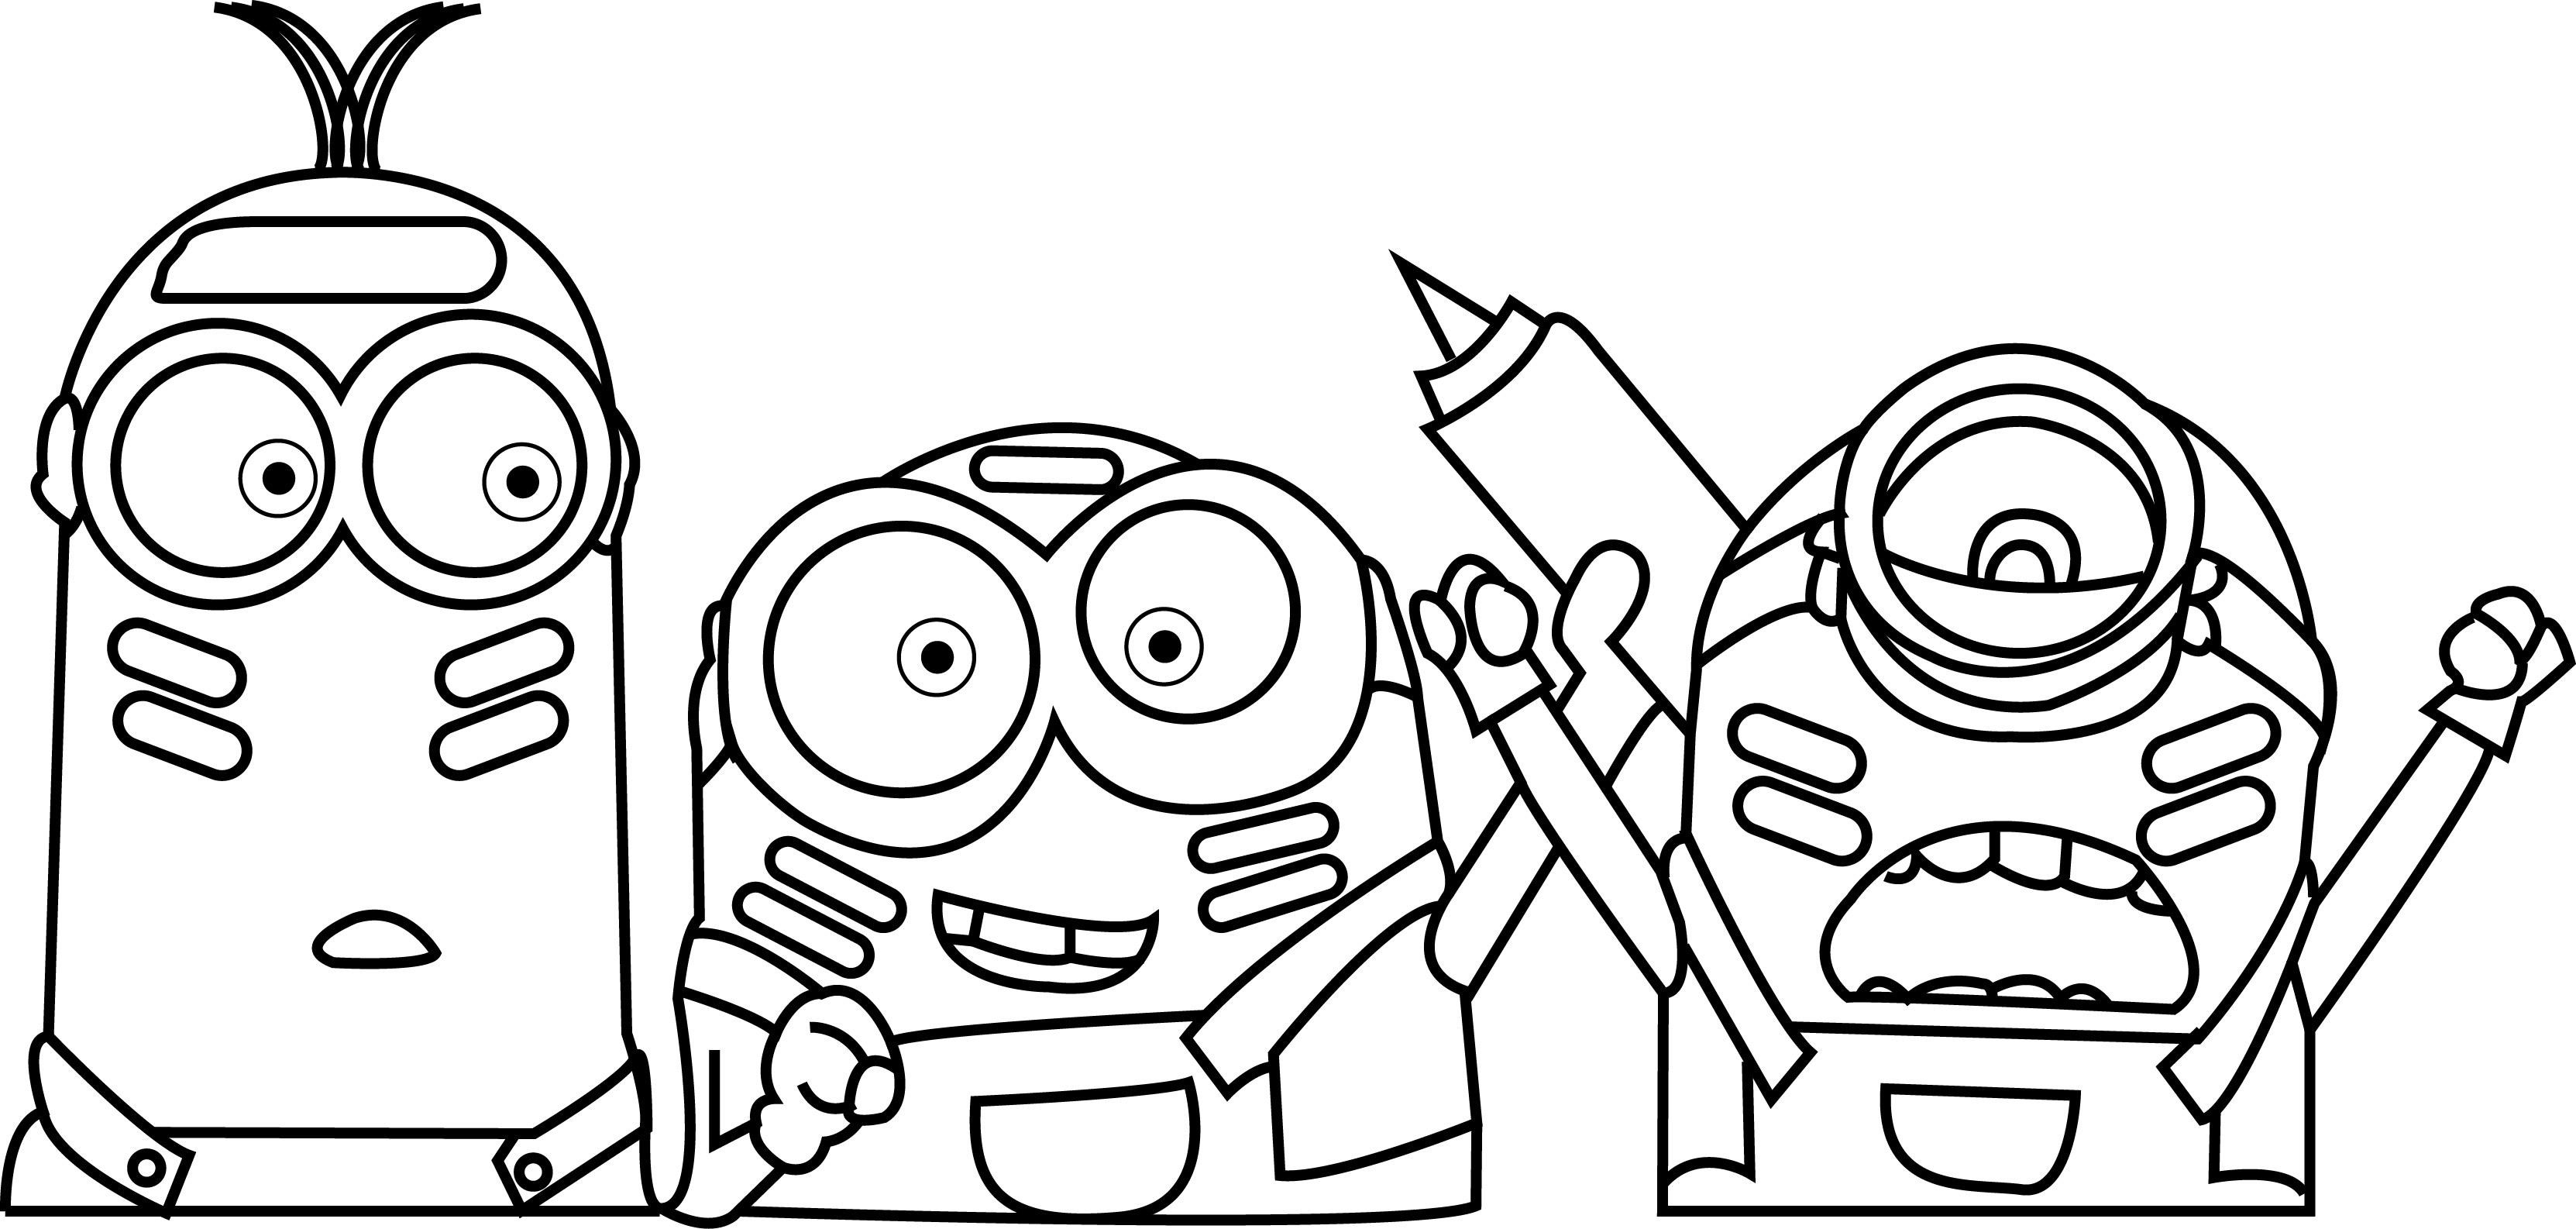 Minions-Color-War-Coloring-Page